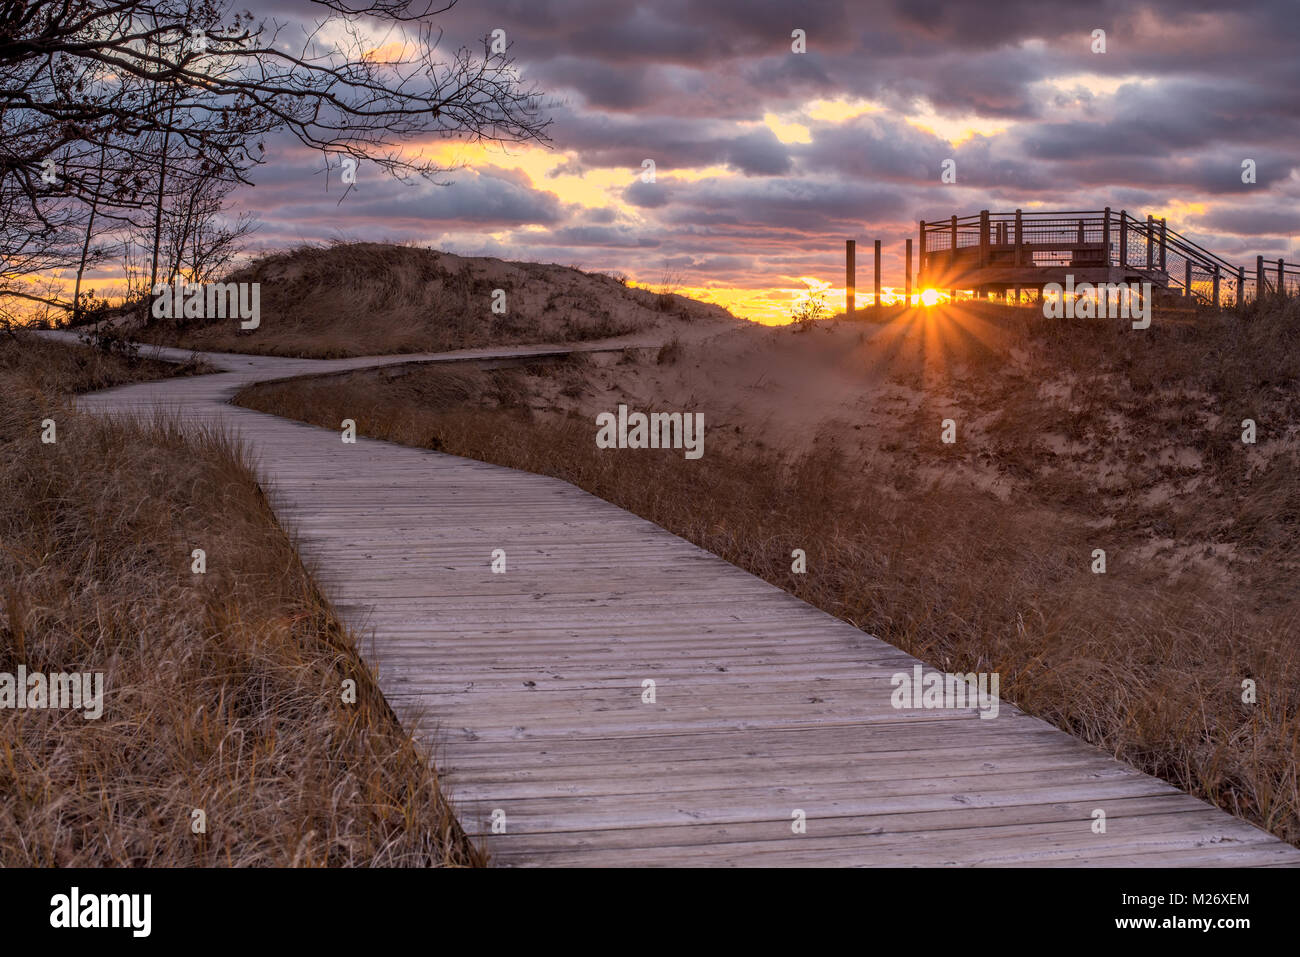 A boardwalk in Michigan during sunset - Stock Image